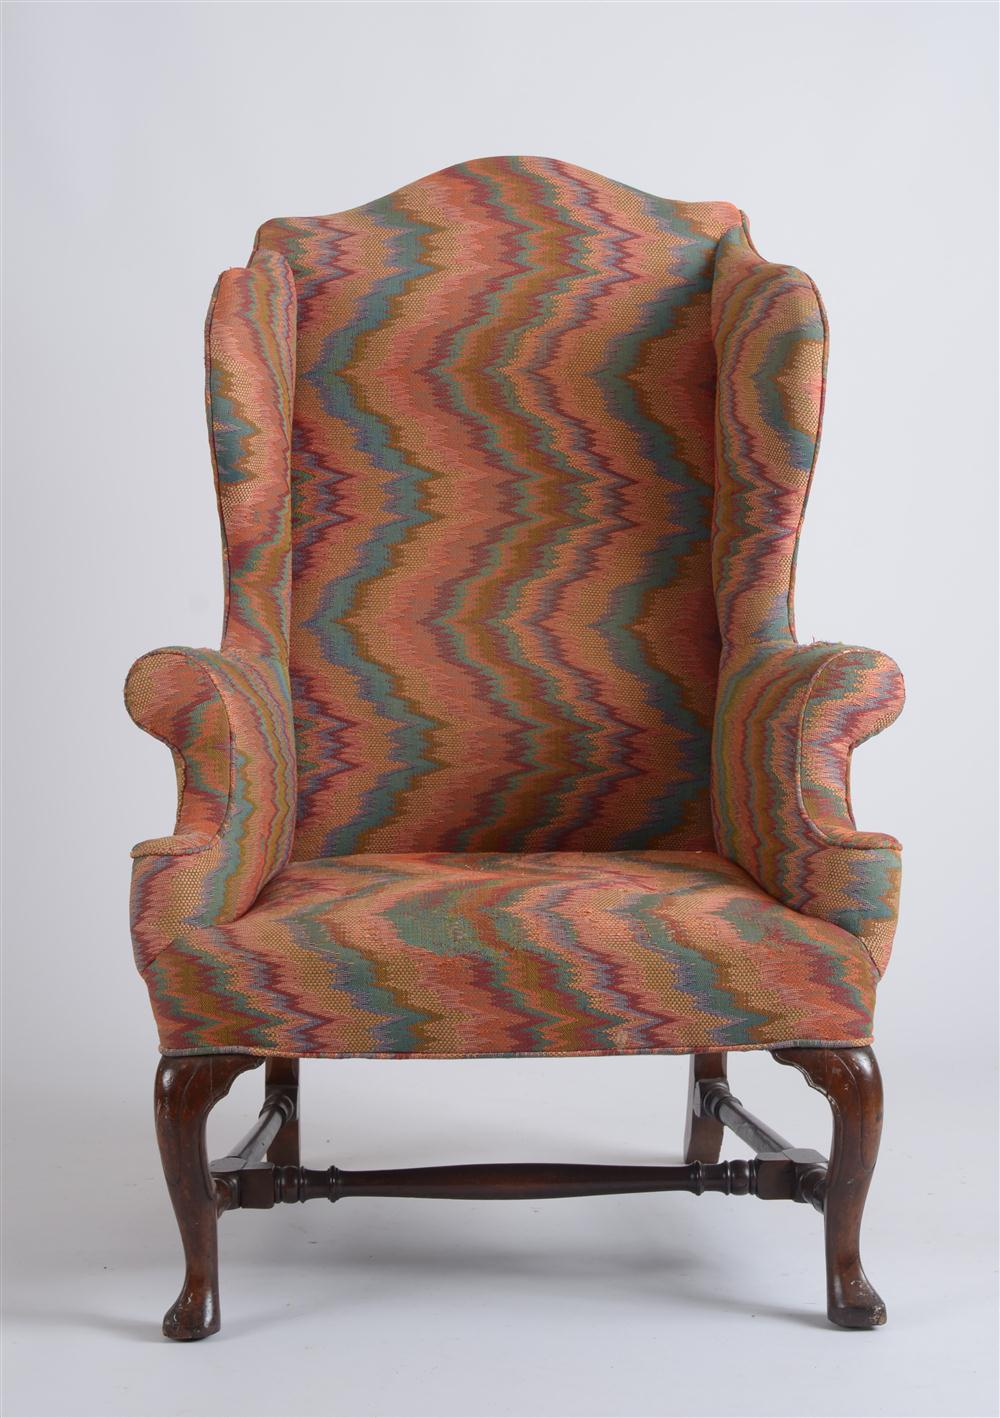 auctions are a great place to find wing back chairs this one is included in the next stair galleries americana auction in hudson ny august 13th